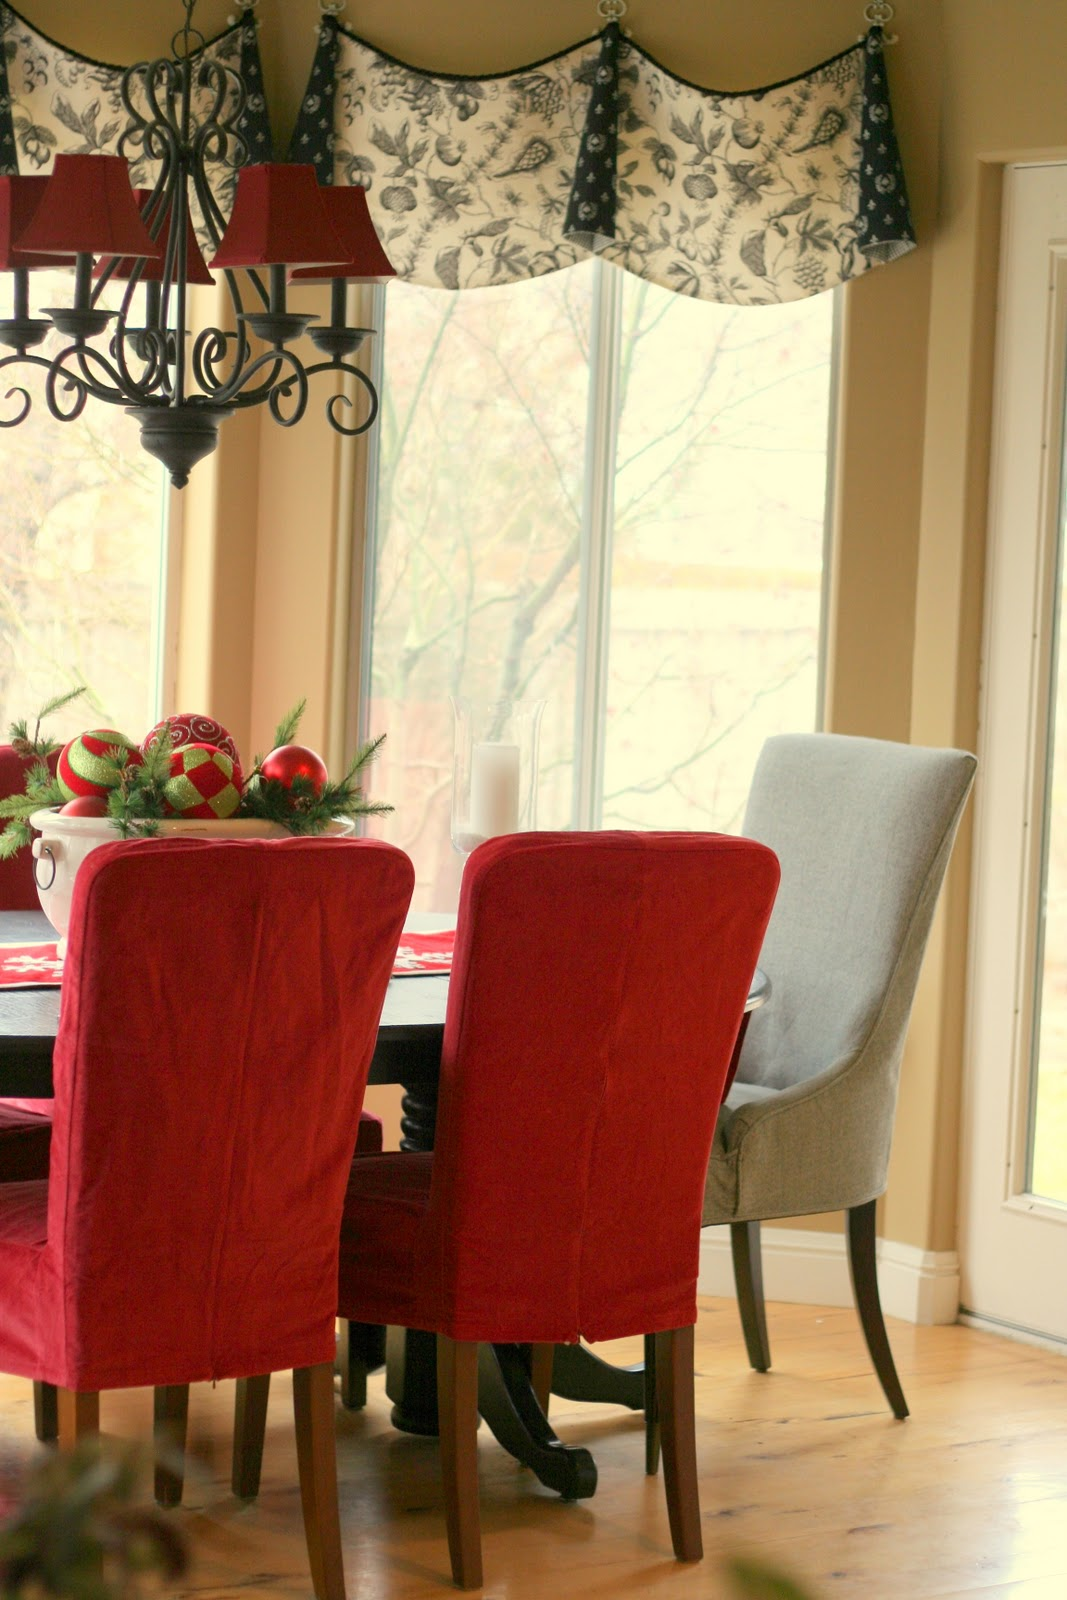 Dining Room Chair Covers Au Worlds Best Massage Custom Slipcovers By Shelley Menswear